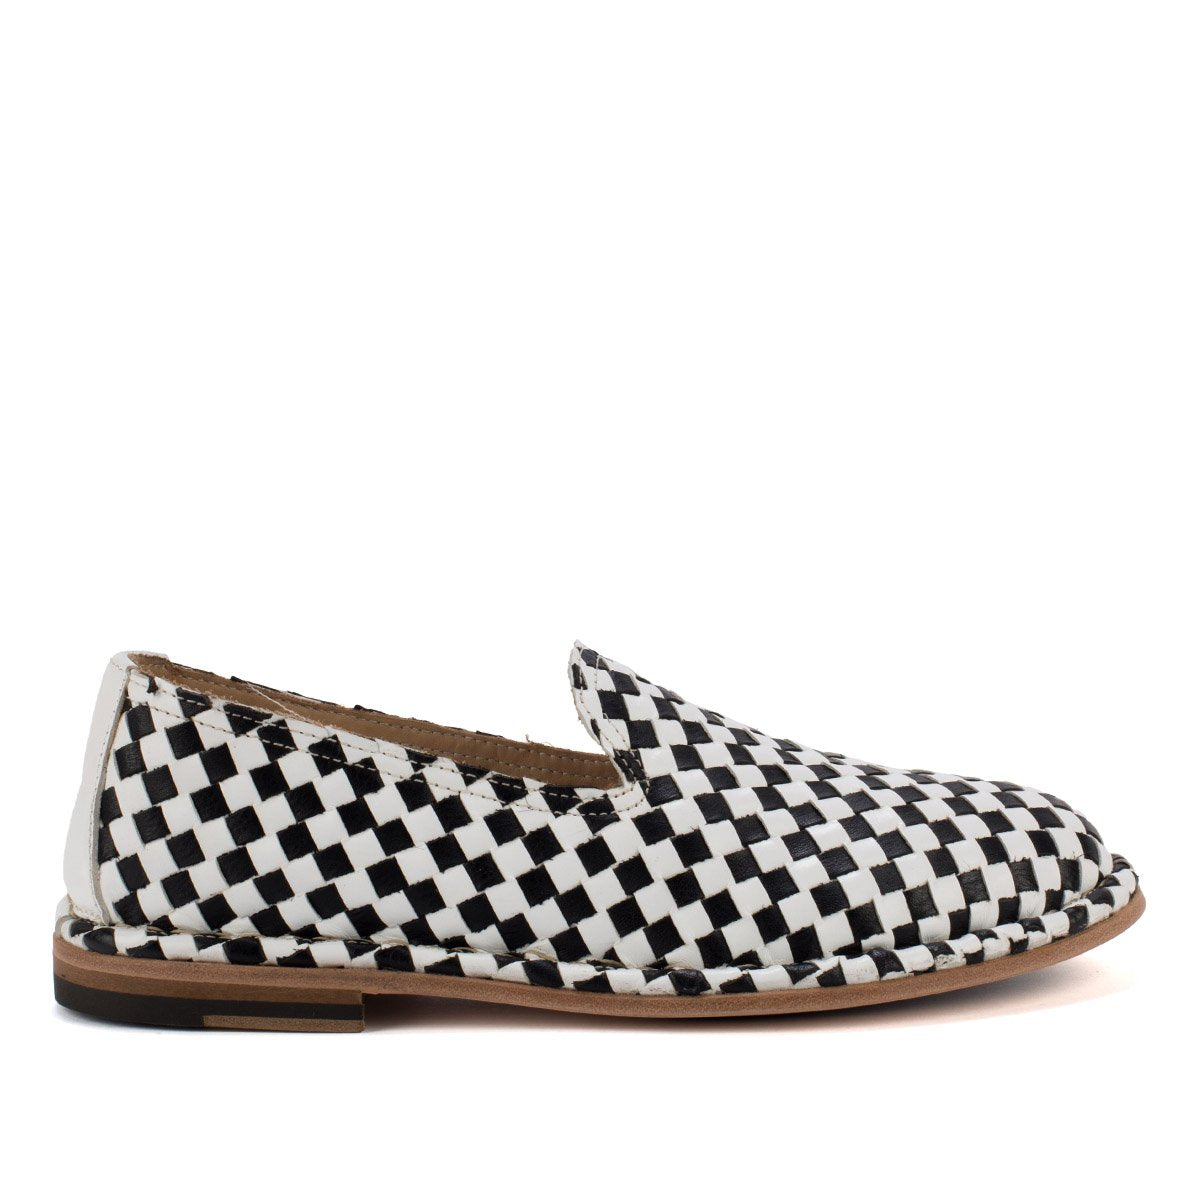 HAND 06 WOVEN SLIPPERS – Black & White